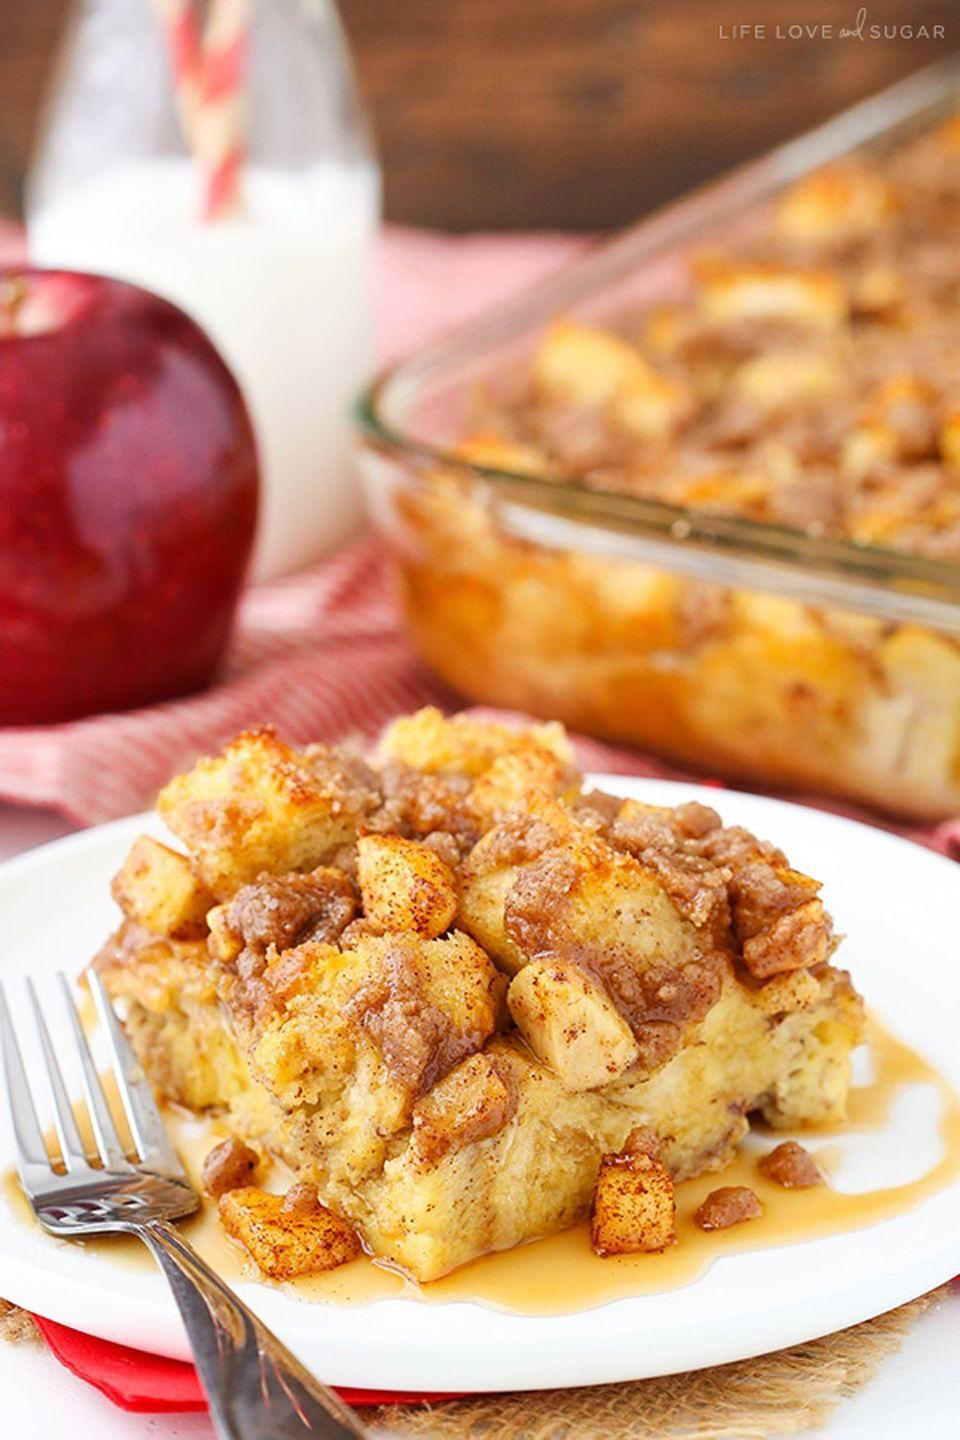 """<p>For a stress-free Mother's Day breakfast in bed, make this gooey casserole ahead of time and just pop it in the oven before serving.</p><p><strong>Get the recipe at <a href=""""https://www.lifeloveandsugar.com/2016/09/26/overnight-cinnamon-apple-baked-french-toast-casserole/"""" rel=""""nofollow noopener"""" target=""""_blank"""" data-ylk=""""slk:Life, Love and Sugar"""" class=""""link rapid-noclick-resp"""">Life, Love and Sugar</a>.</strong></p><p><a class=""""link rapid-noclick-resp"""" href=""""https://www.amazon.com/Pyrex-Basics-Oblong-Baking-Plastic/dp/B01IUKIPYY?tag=syn-yahoo-20&ascsubtag=%5Bartid%7C10050.g.1681%5Bsrc%7Cyahoo-us"""" rel=""""nofollow noopener"""" target=""""_blank"""" data-ylk=""""slk:SHOP BAKING DISHES"""">SHOP BAKING DISHES</a> </p>"""